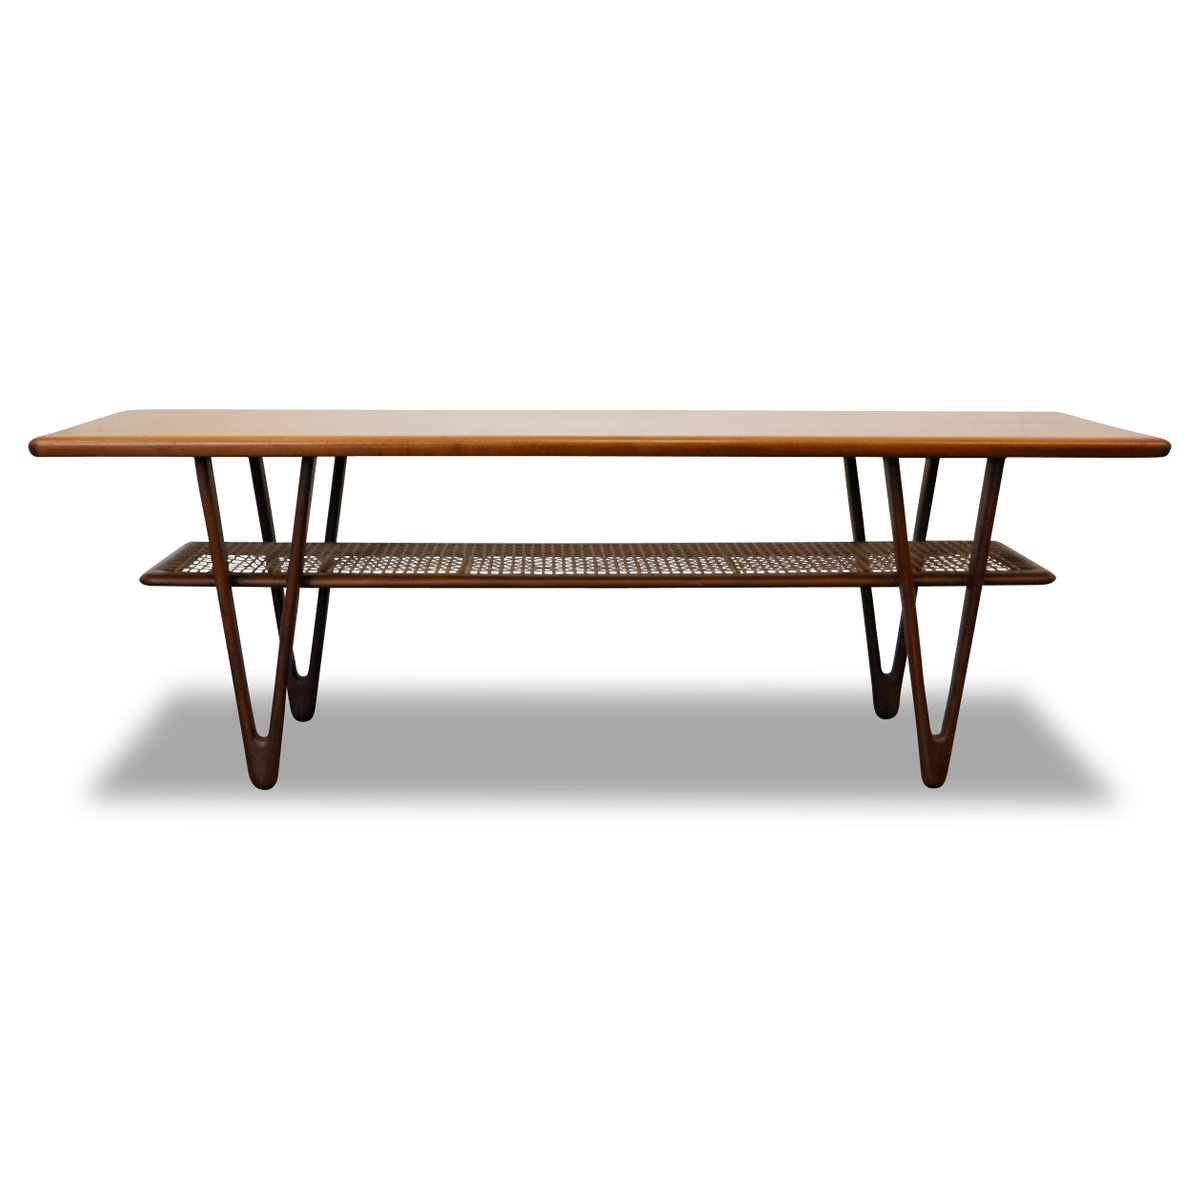 Mid-Century Modern Danish Teak Coffee Table, 1950s For